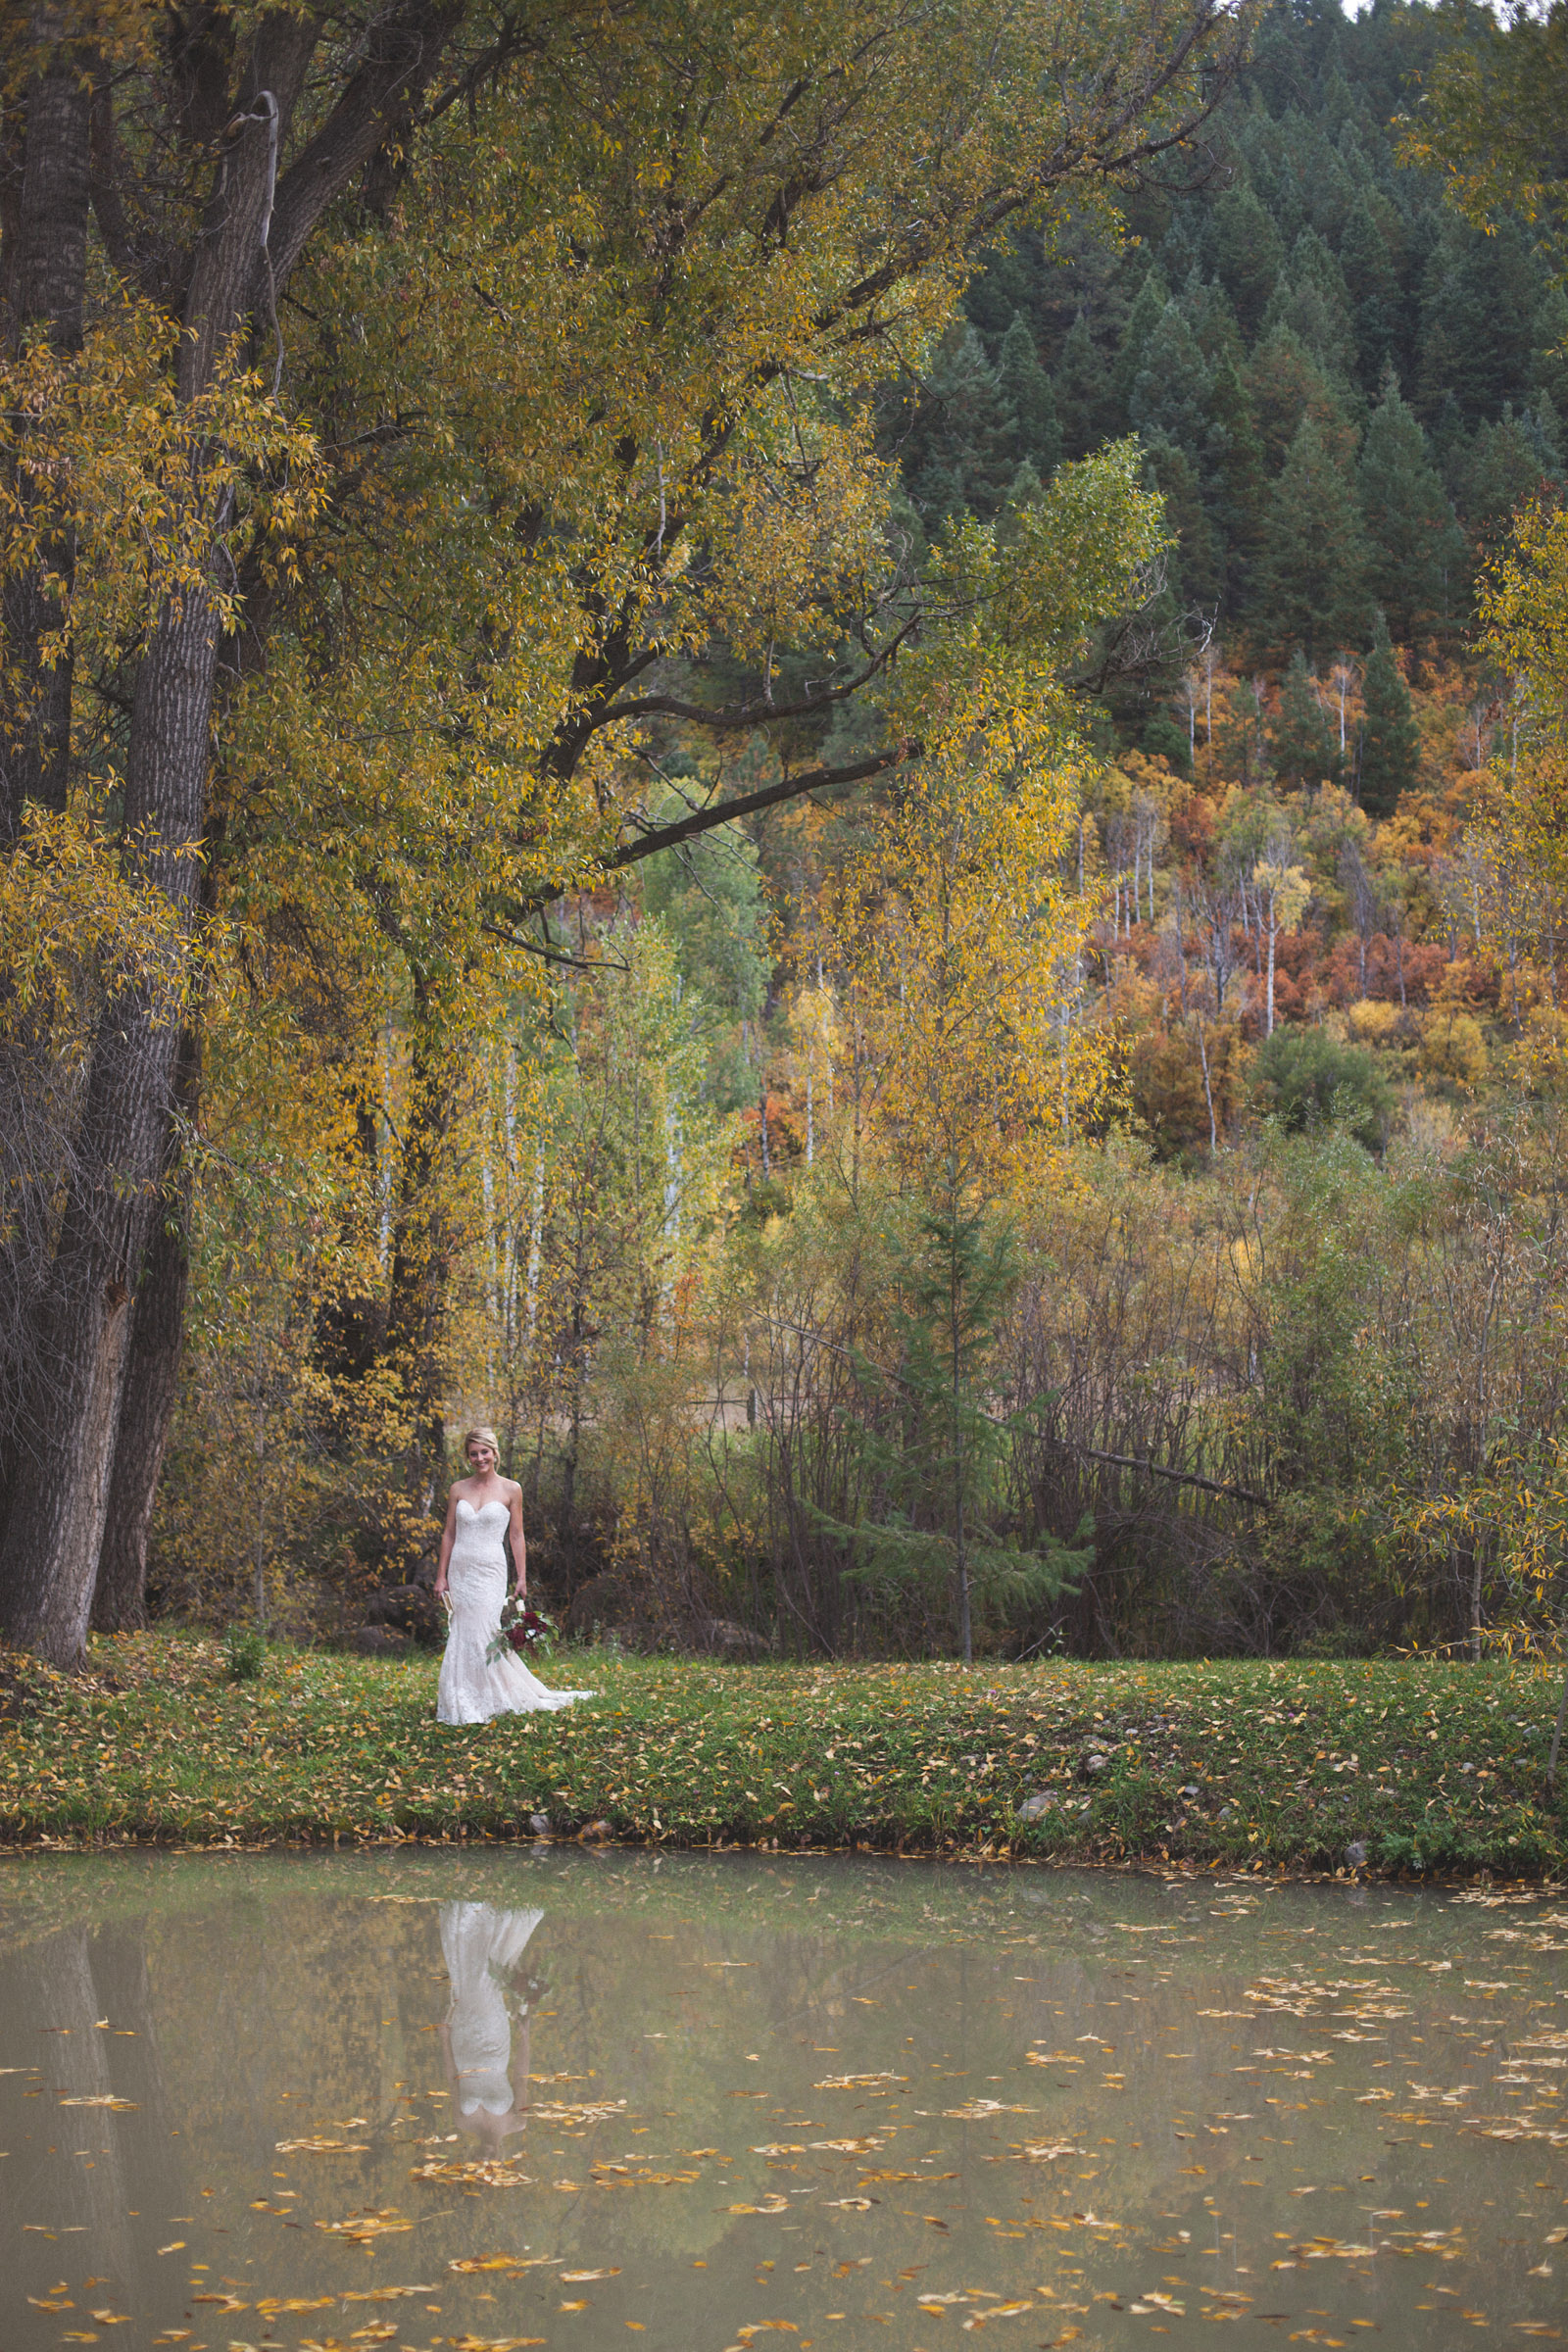 039-beautiful-portrait-of-bride-in-dress-in-nature-and-photojournalistic-photography-in-durango-colorado-elopement-wedding